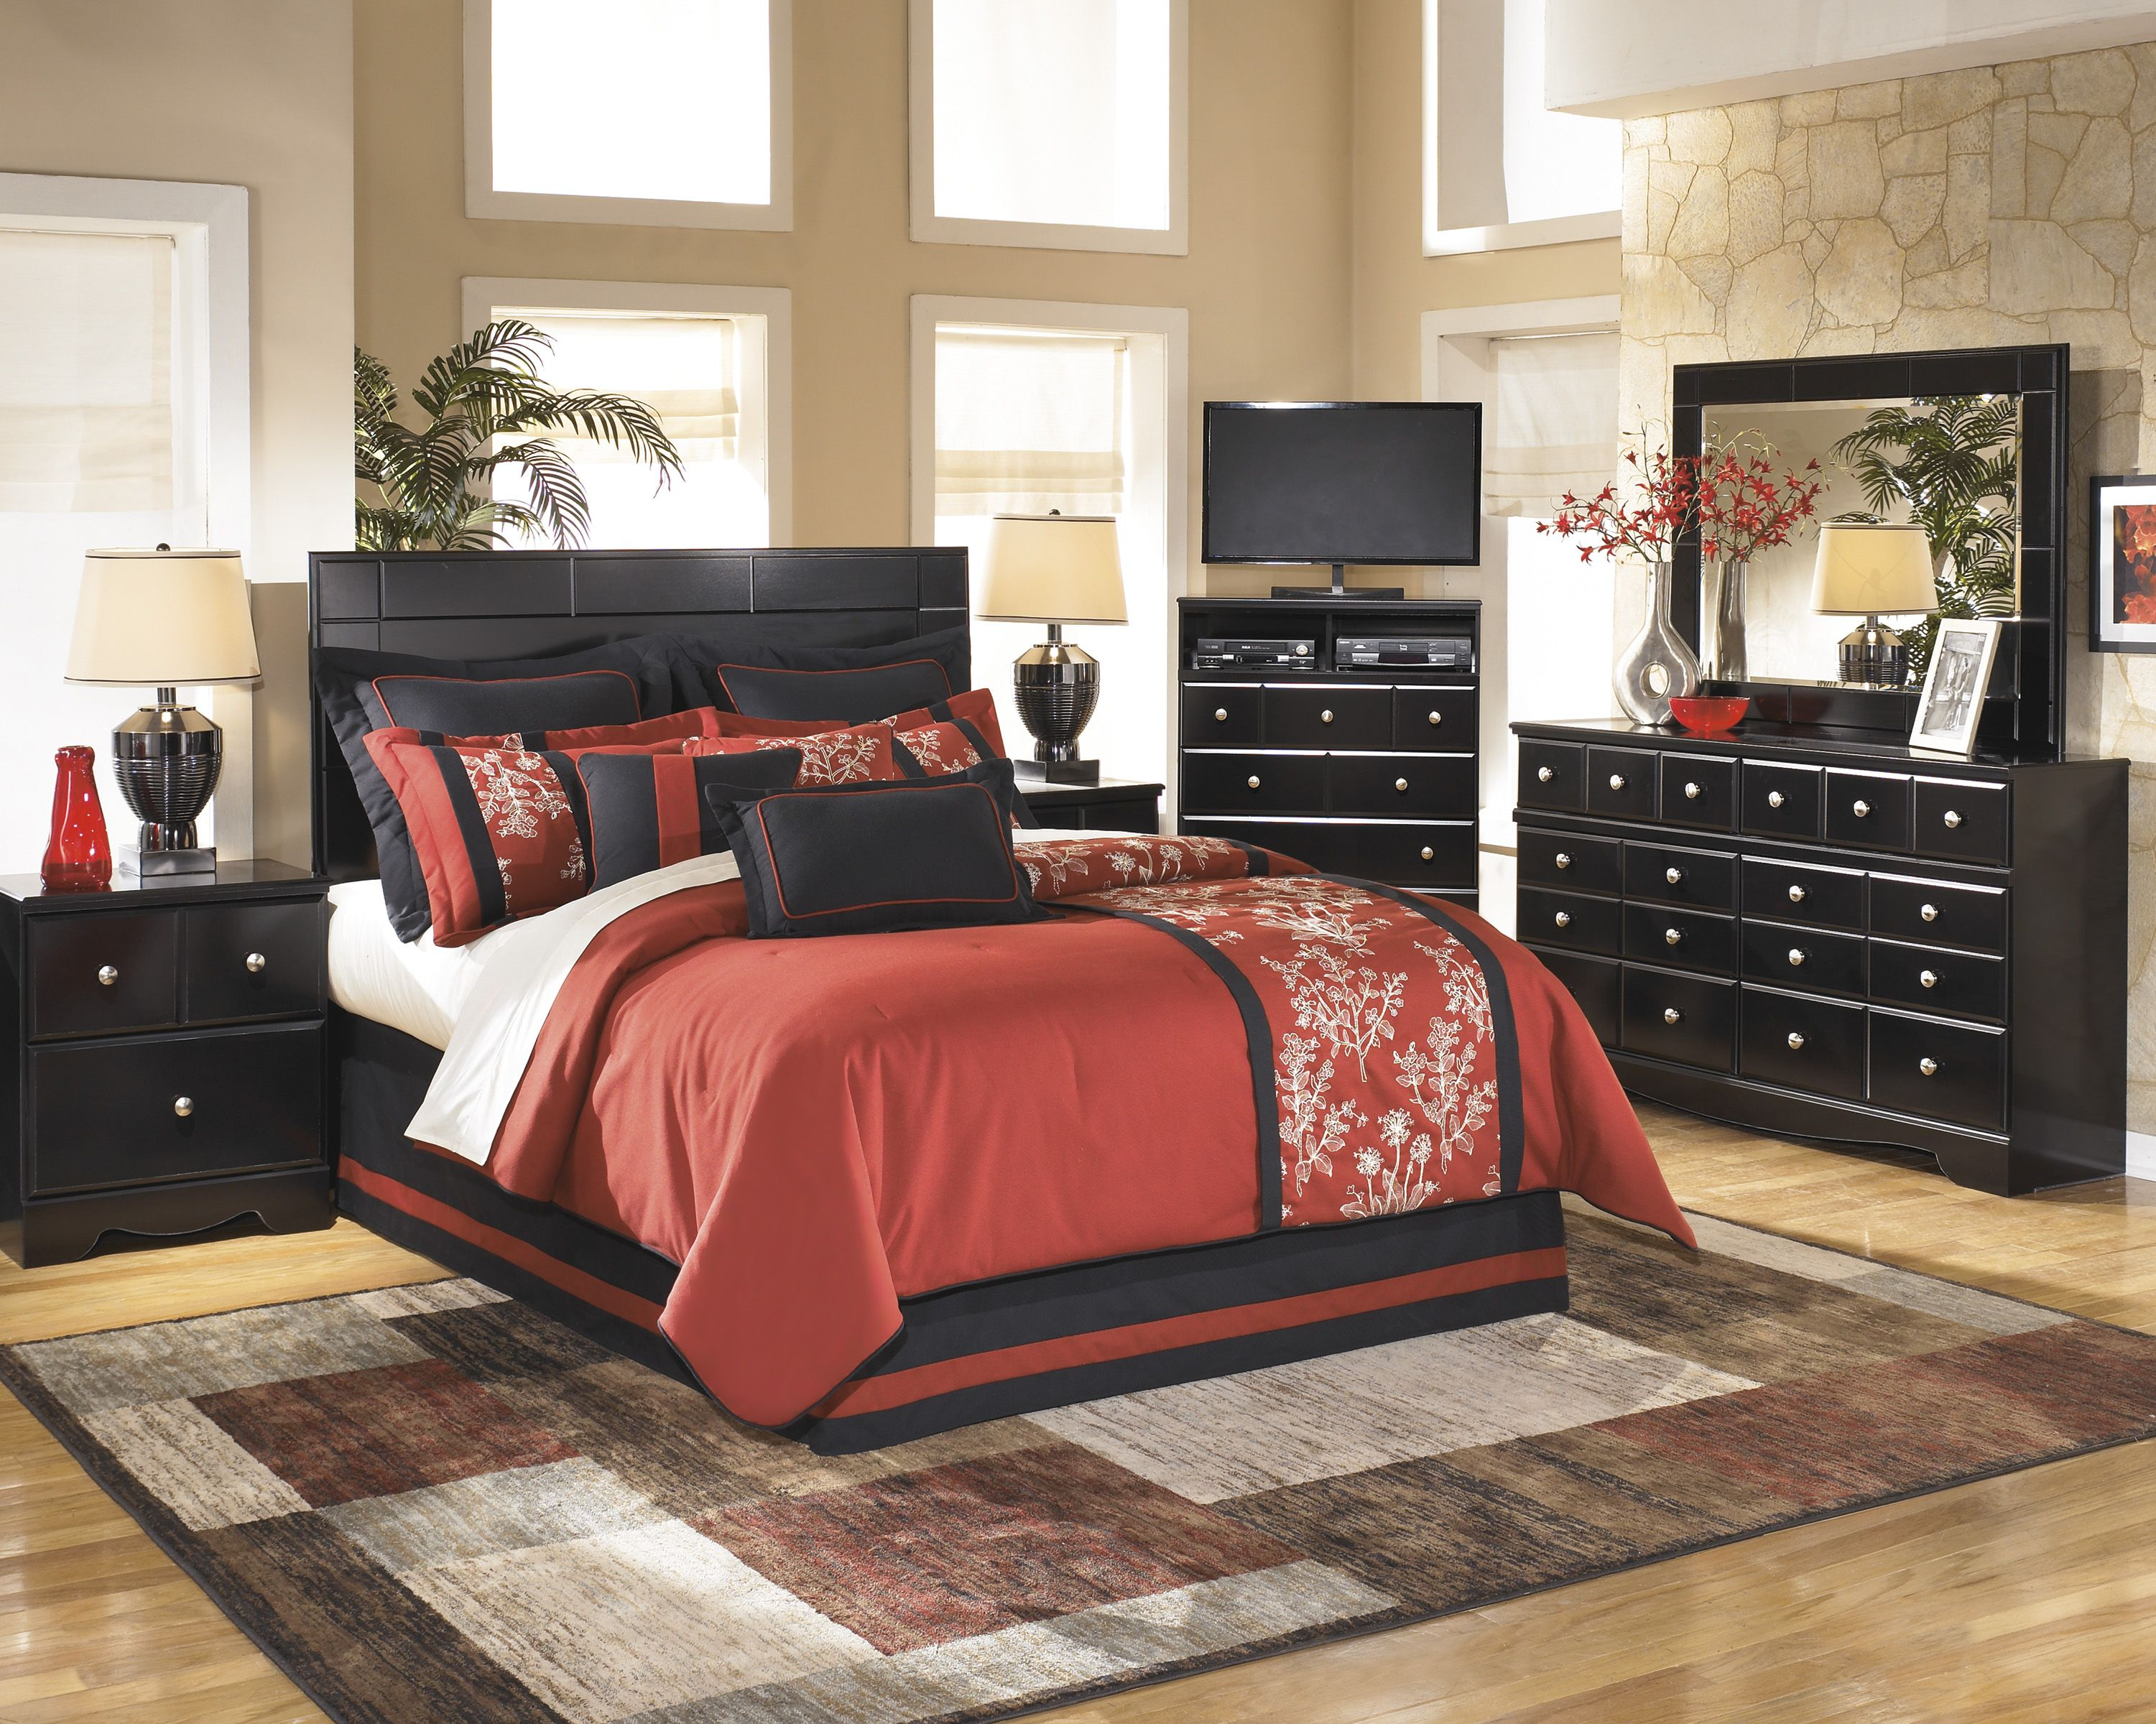 Master Bedroom With Rich Red Bedding. Stunning!